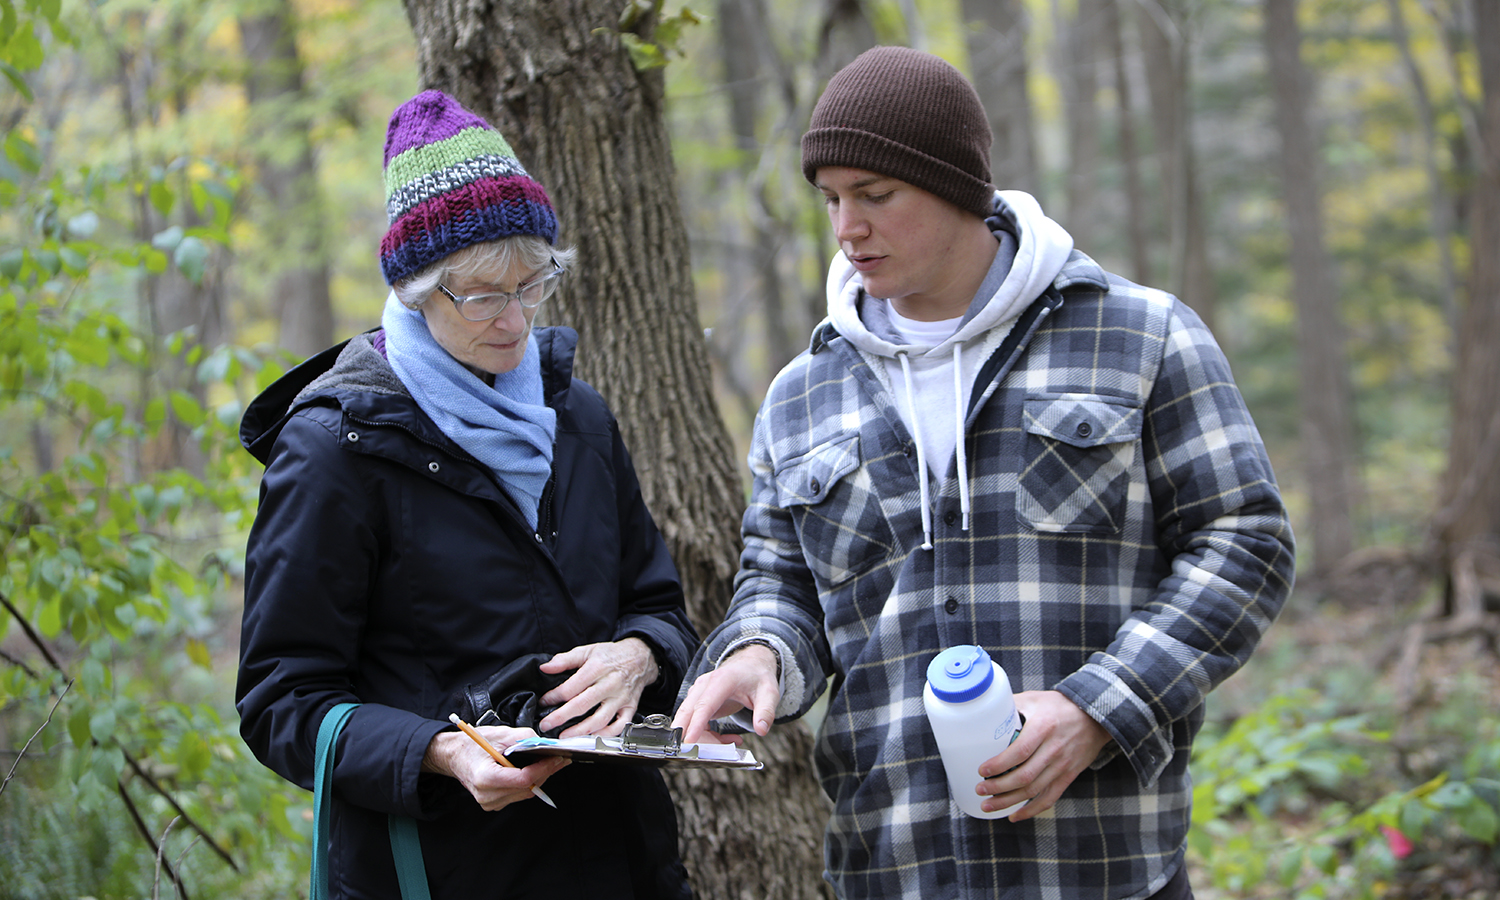 At the Kashong Creek Conservation Area, Professor of Biology Beth Newell and Parke Schweiter '19 record data as part of Schweiter's independent study on the impact of the Emerald Ash Borer on forests in the Finger Lakes region.